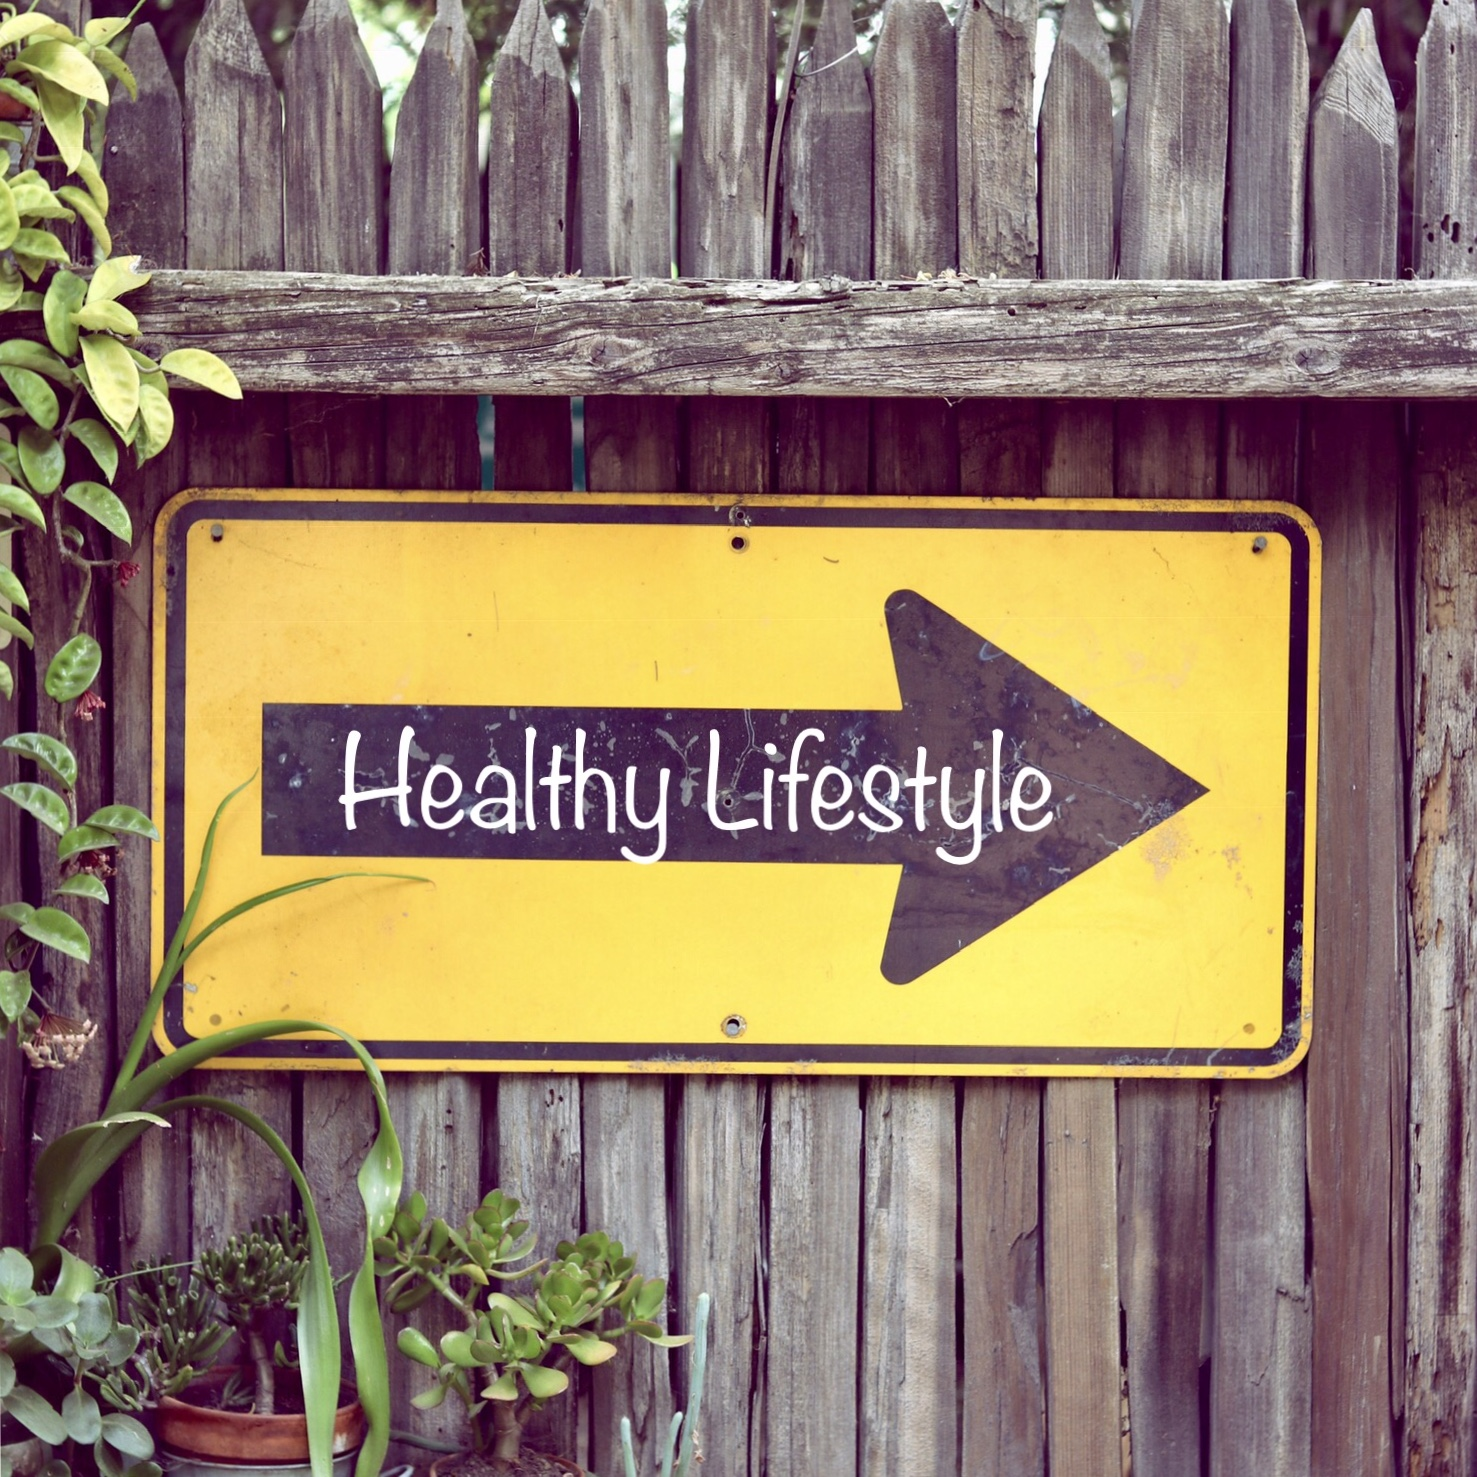 Dieting vs. Healthy Lifestyle Mentality